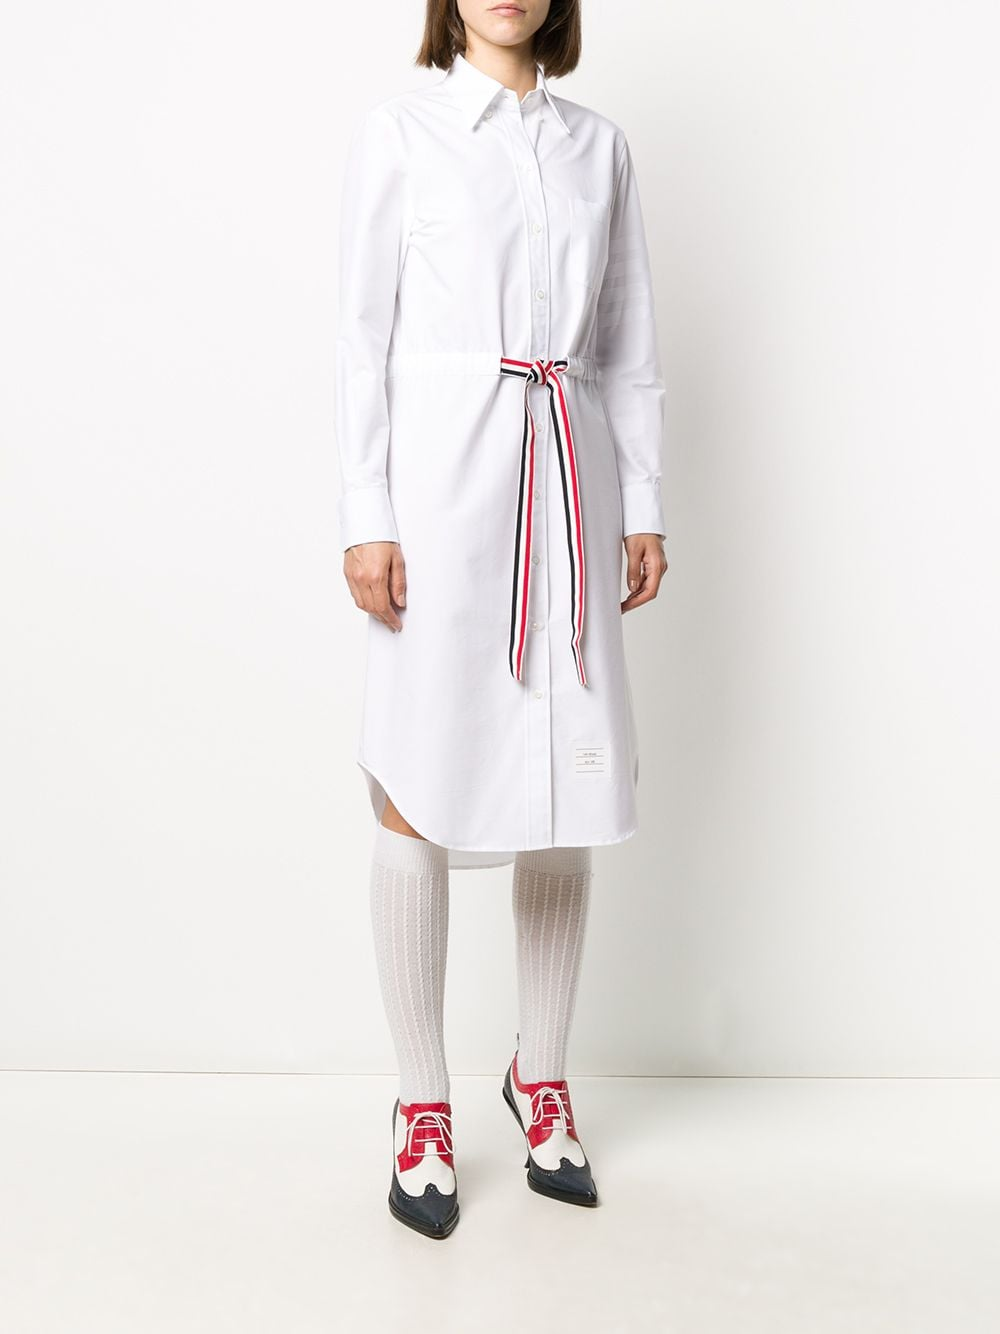 THOM BROWNE WOMEN LONG SLEEVE BELOW THE KNEE SHIRTDRESS W/ TONAL GROSGRAIN BELT IN OXFORD SATIN WEAVE ENGINEERED 4 BAR STRIPE